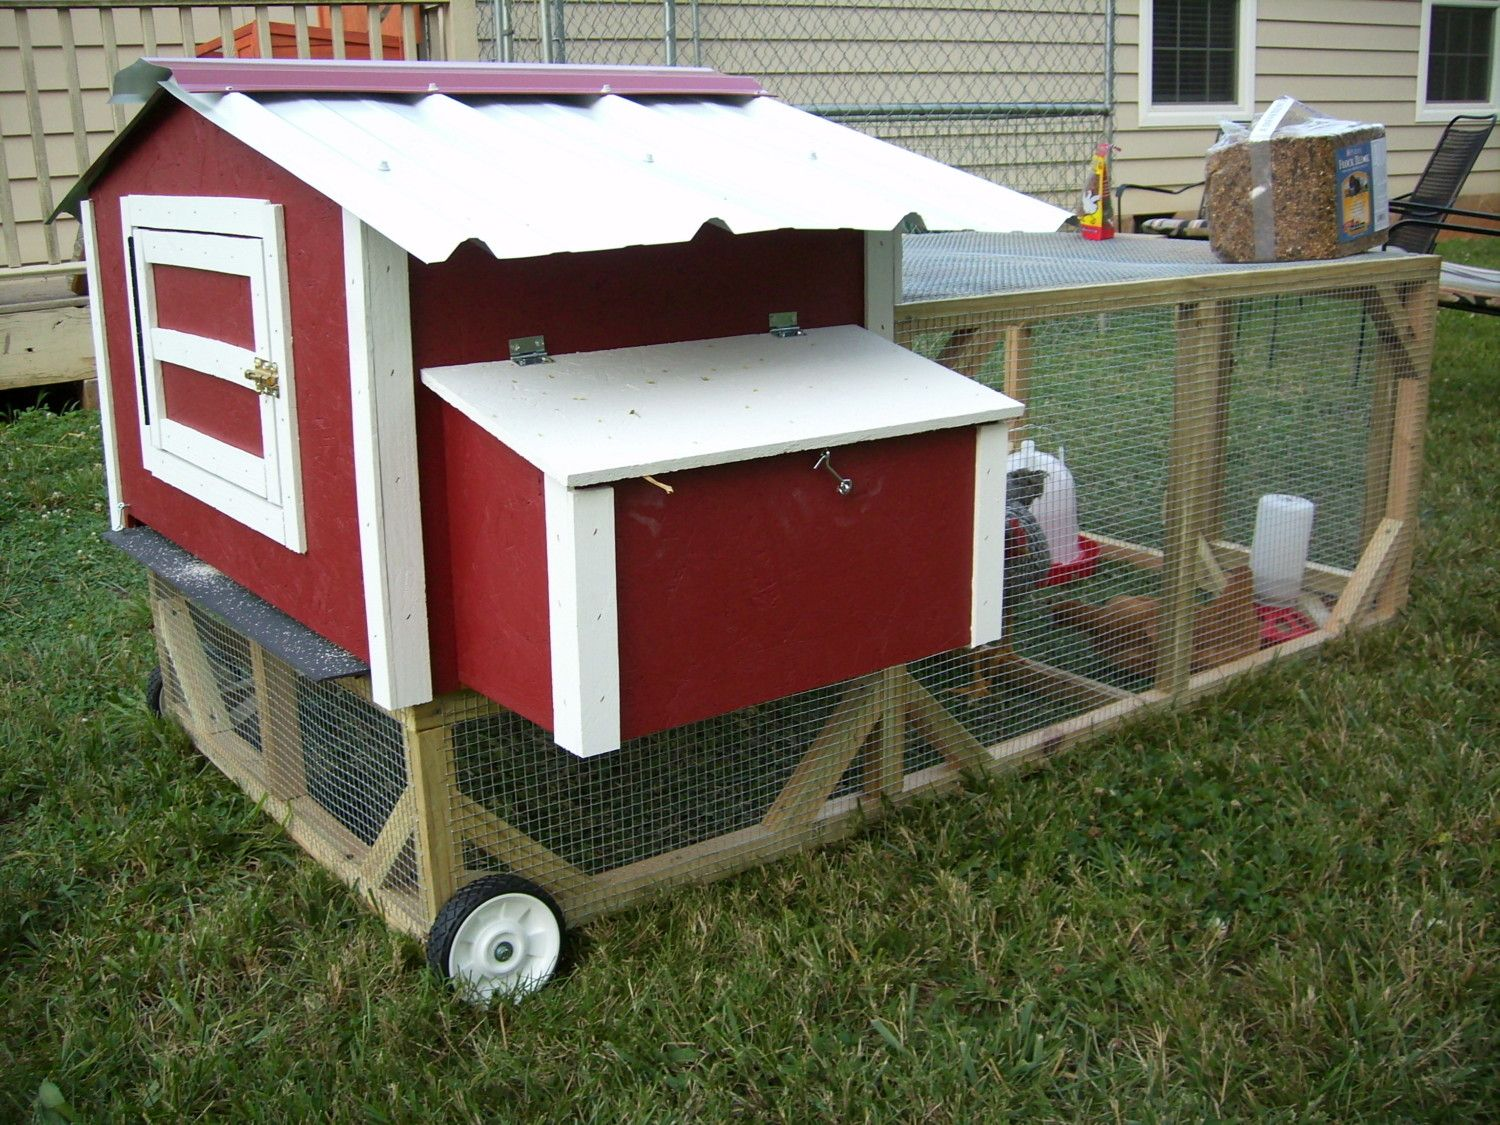 itsthelaw37801's photos in Hello and my chicken coop design